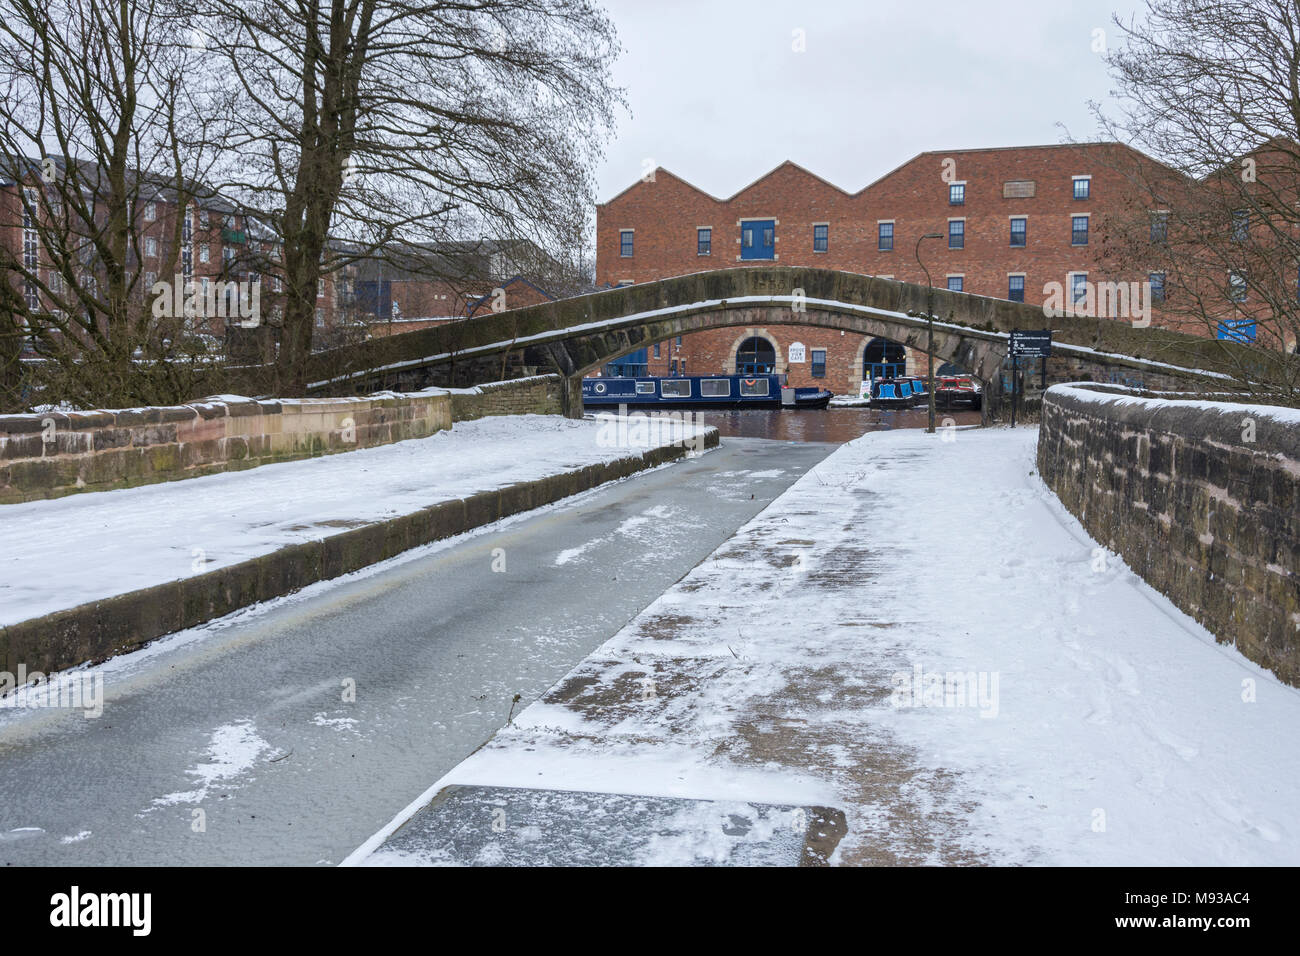 Dukinfield Aqueduct, which carries the Peak Forest canal over the river Tame at Portland Basin, Ashton-under-Lyne, Tameside, Manchester, England, UK - Stock Image